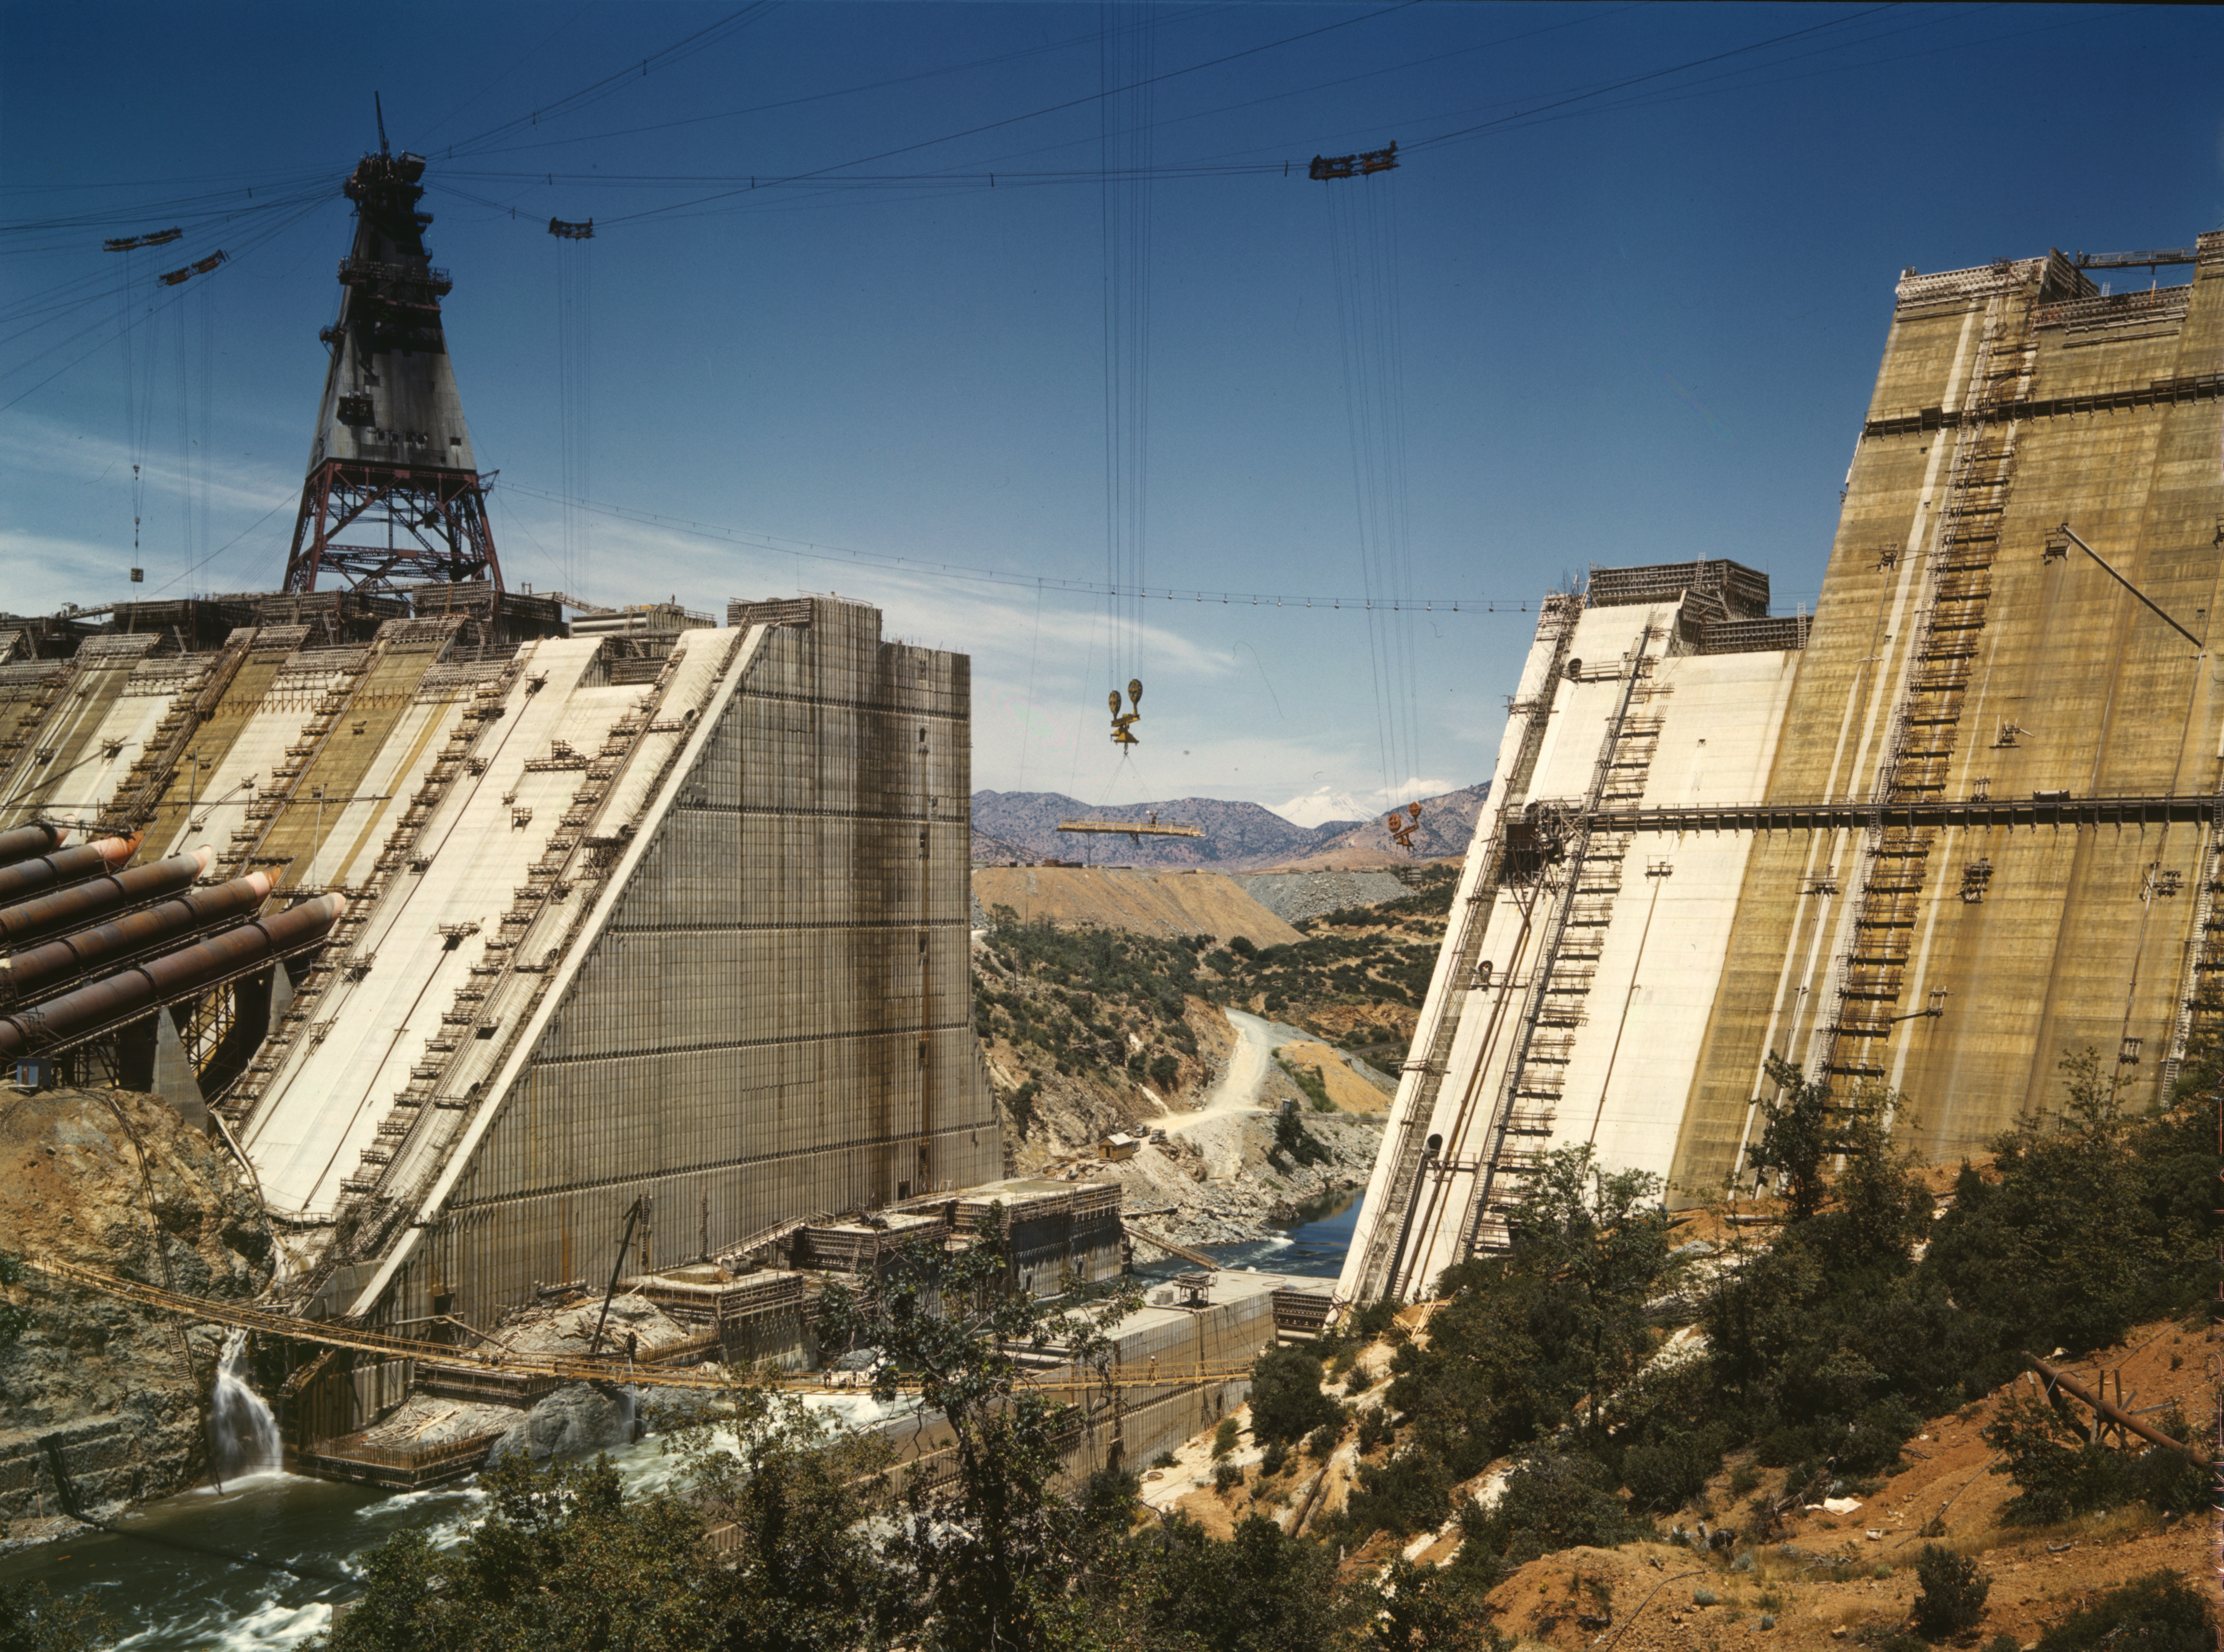 Scholars have associated large water projects like the Shasta Dam, on Northern California's Sacramento River, with their silencing effects on the rivers they impound. Image via Library of Congress.